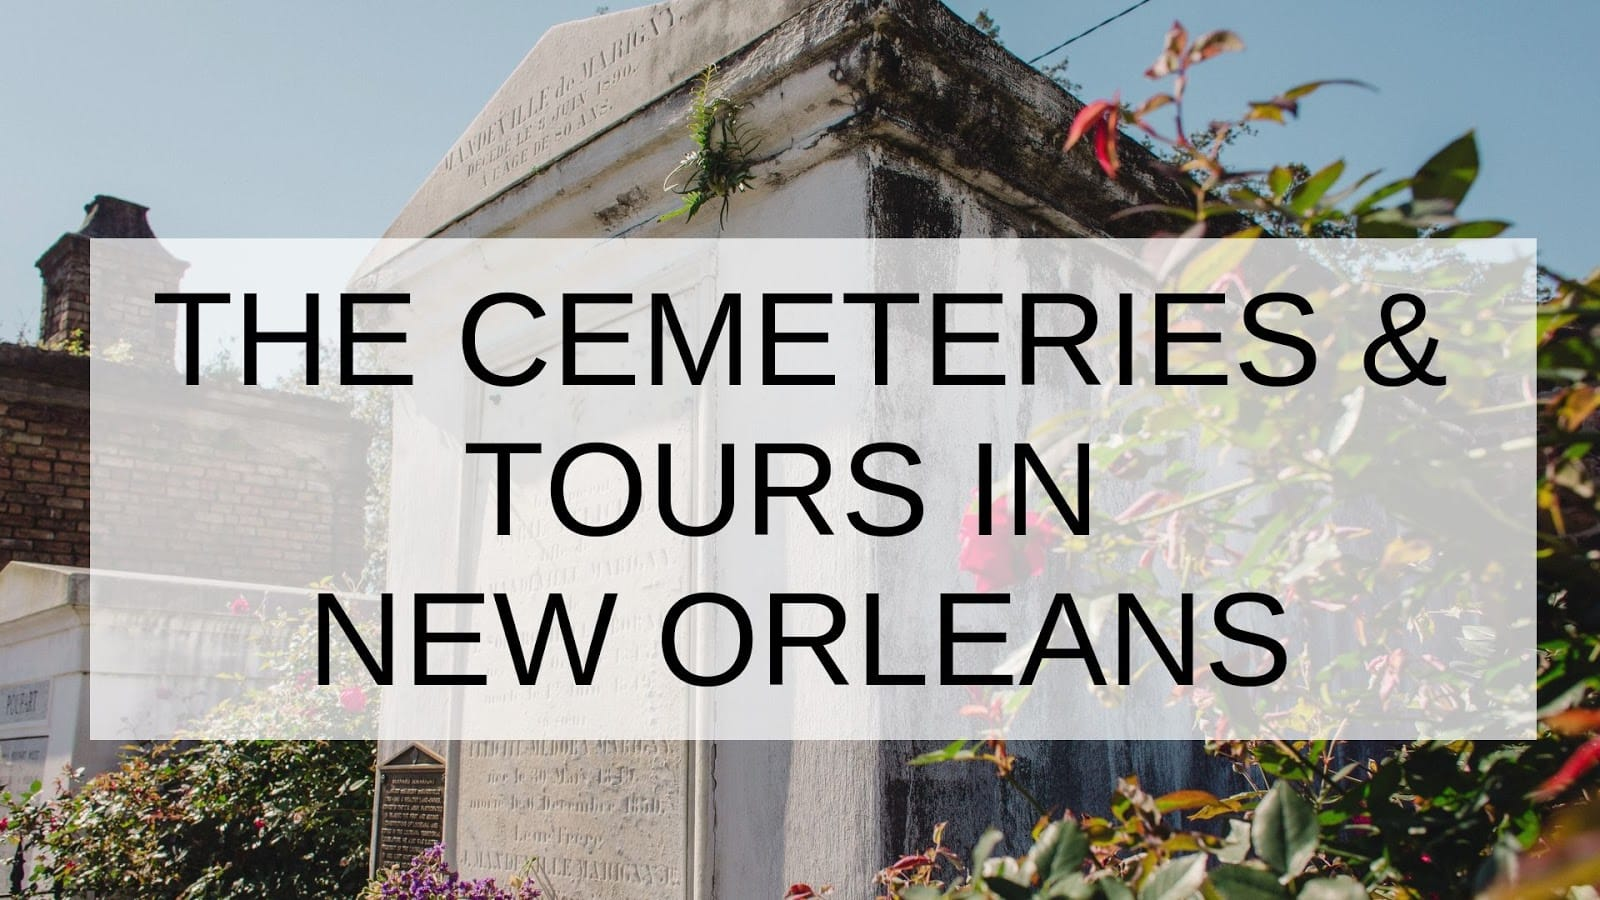 The Cemeteries & Tours in New Orleans